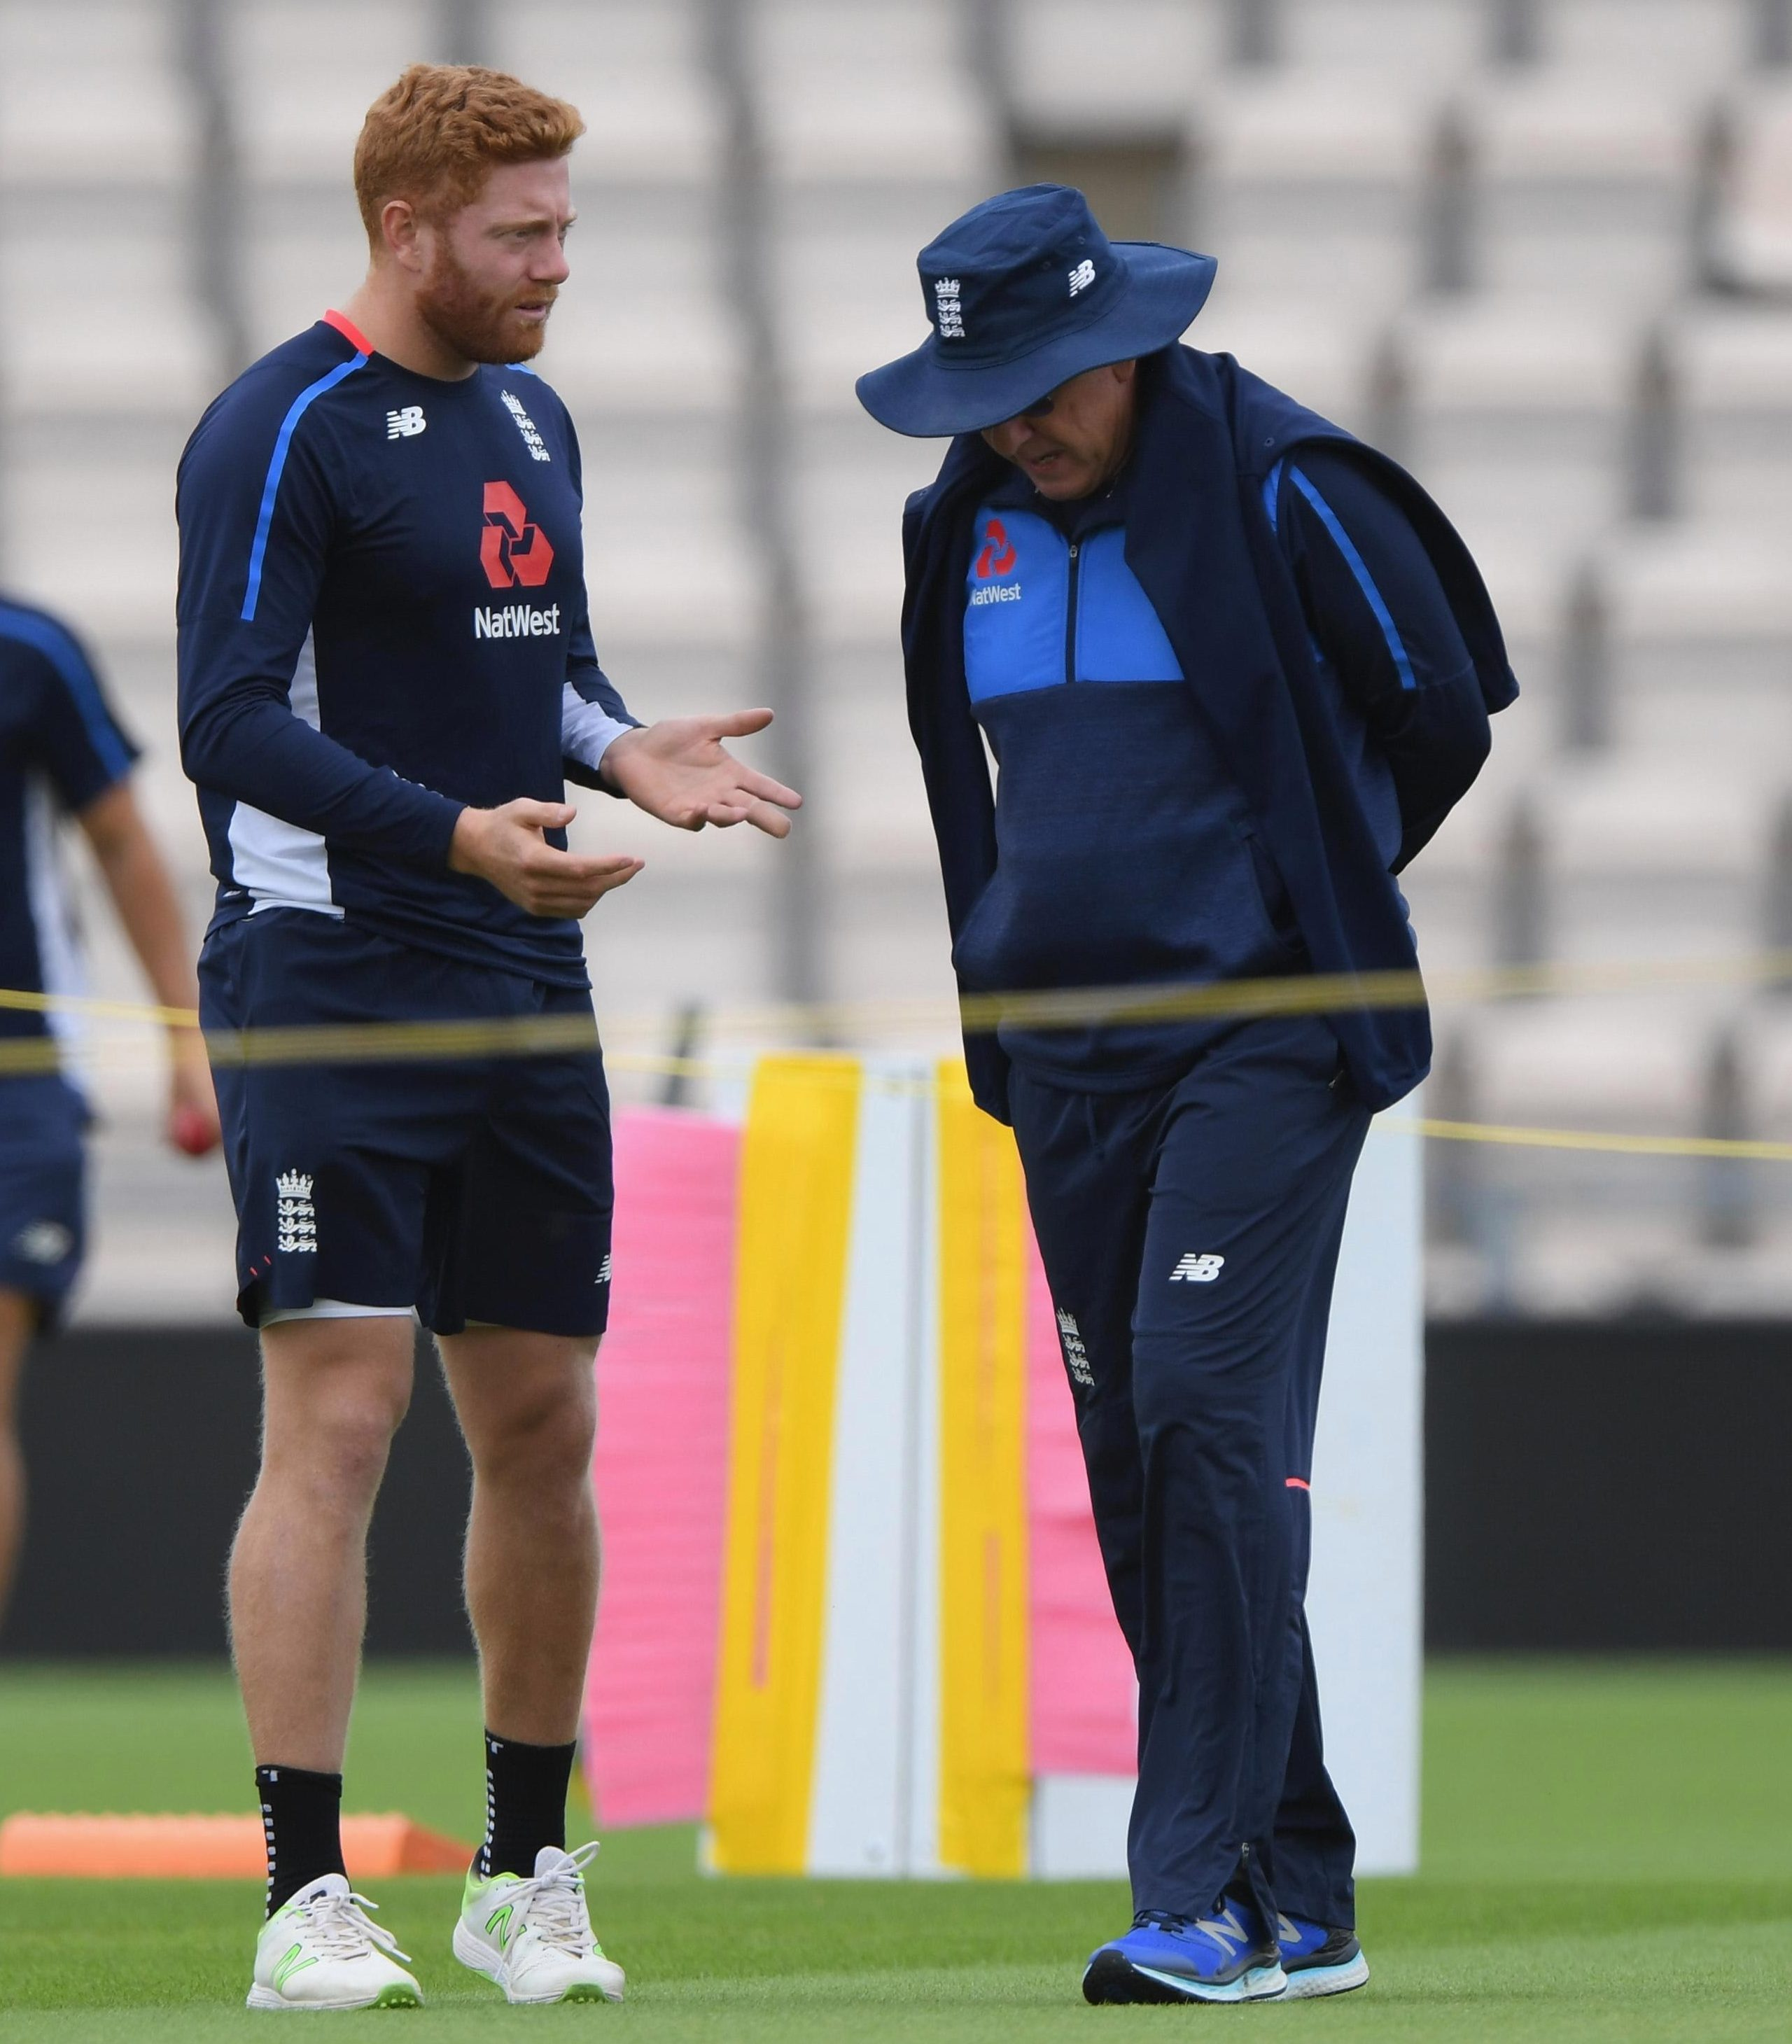 Jonny Bairstow tells England coach Trevor Bayliss that he does not want to give up his role as England's wicketkeeper